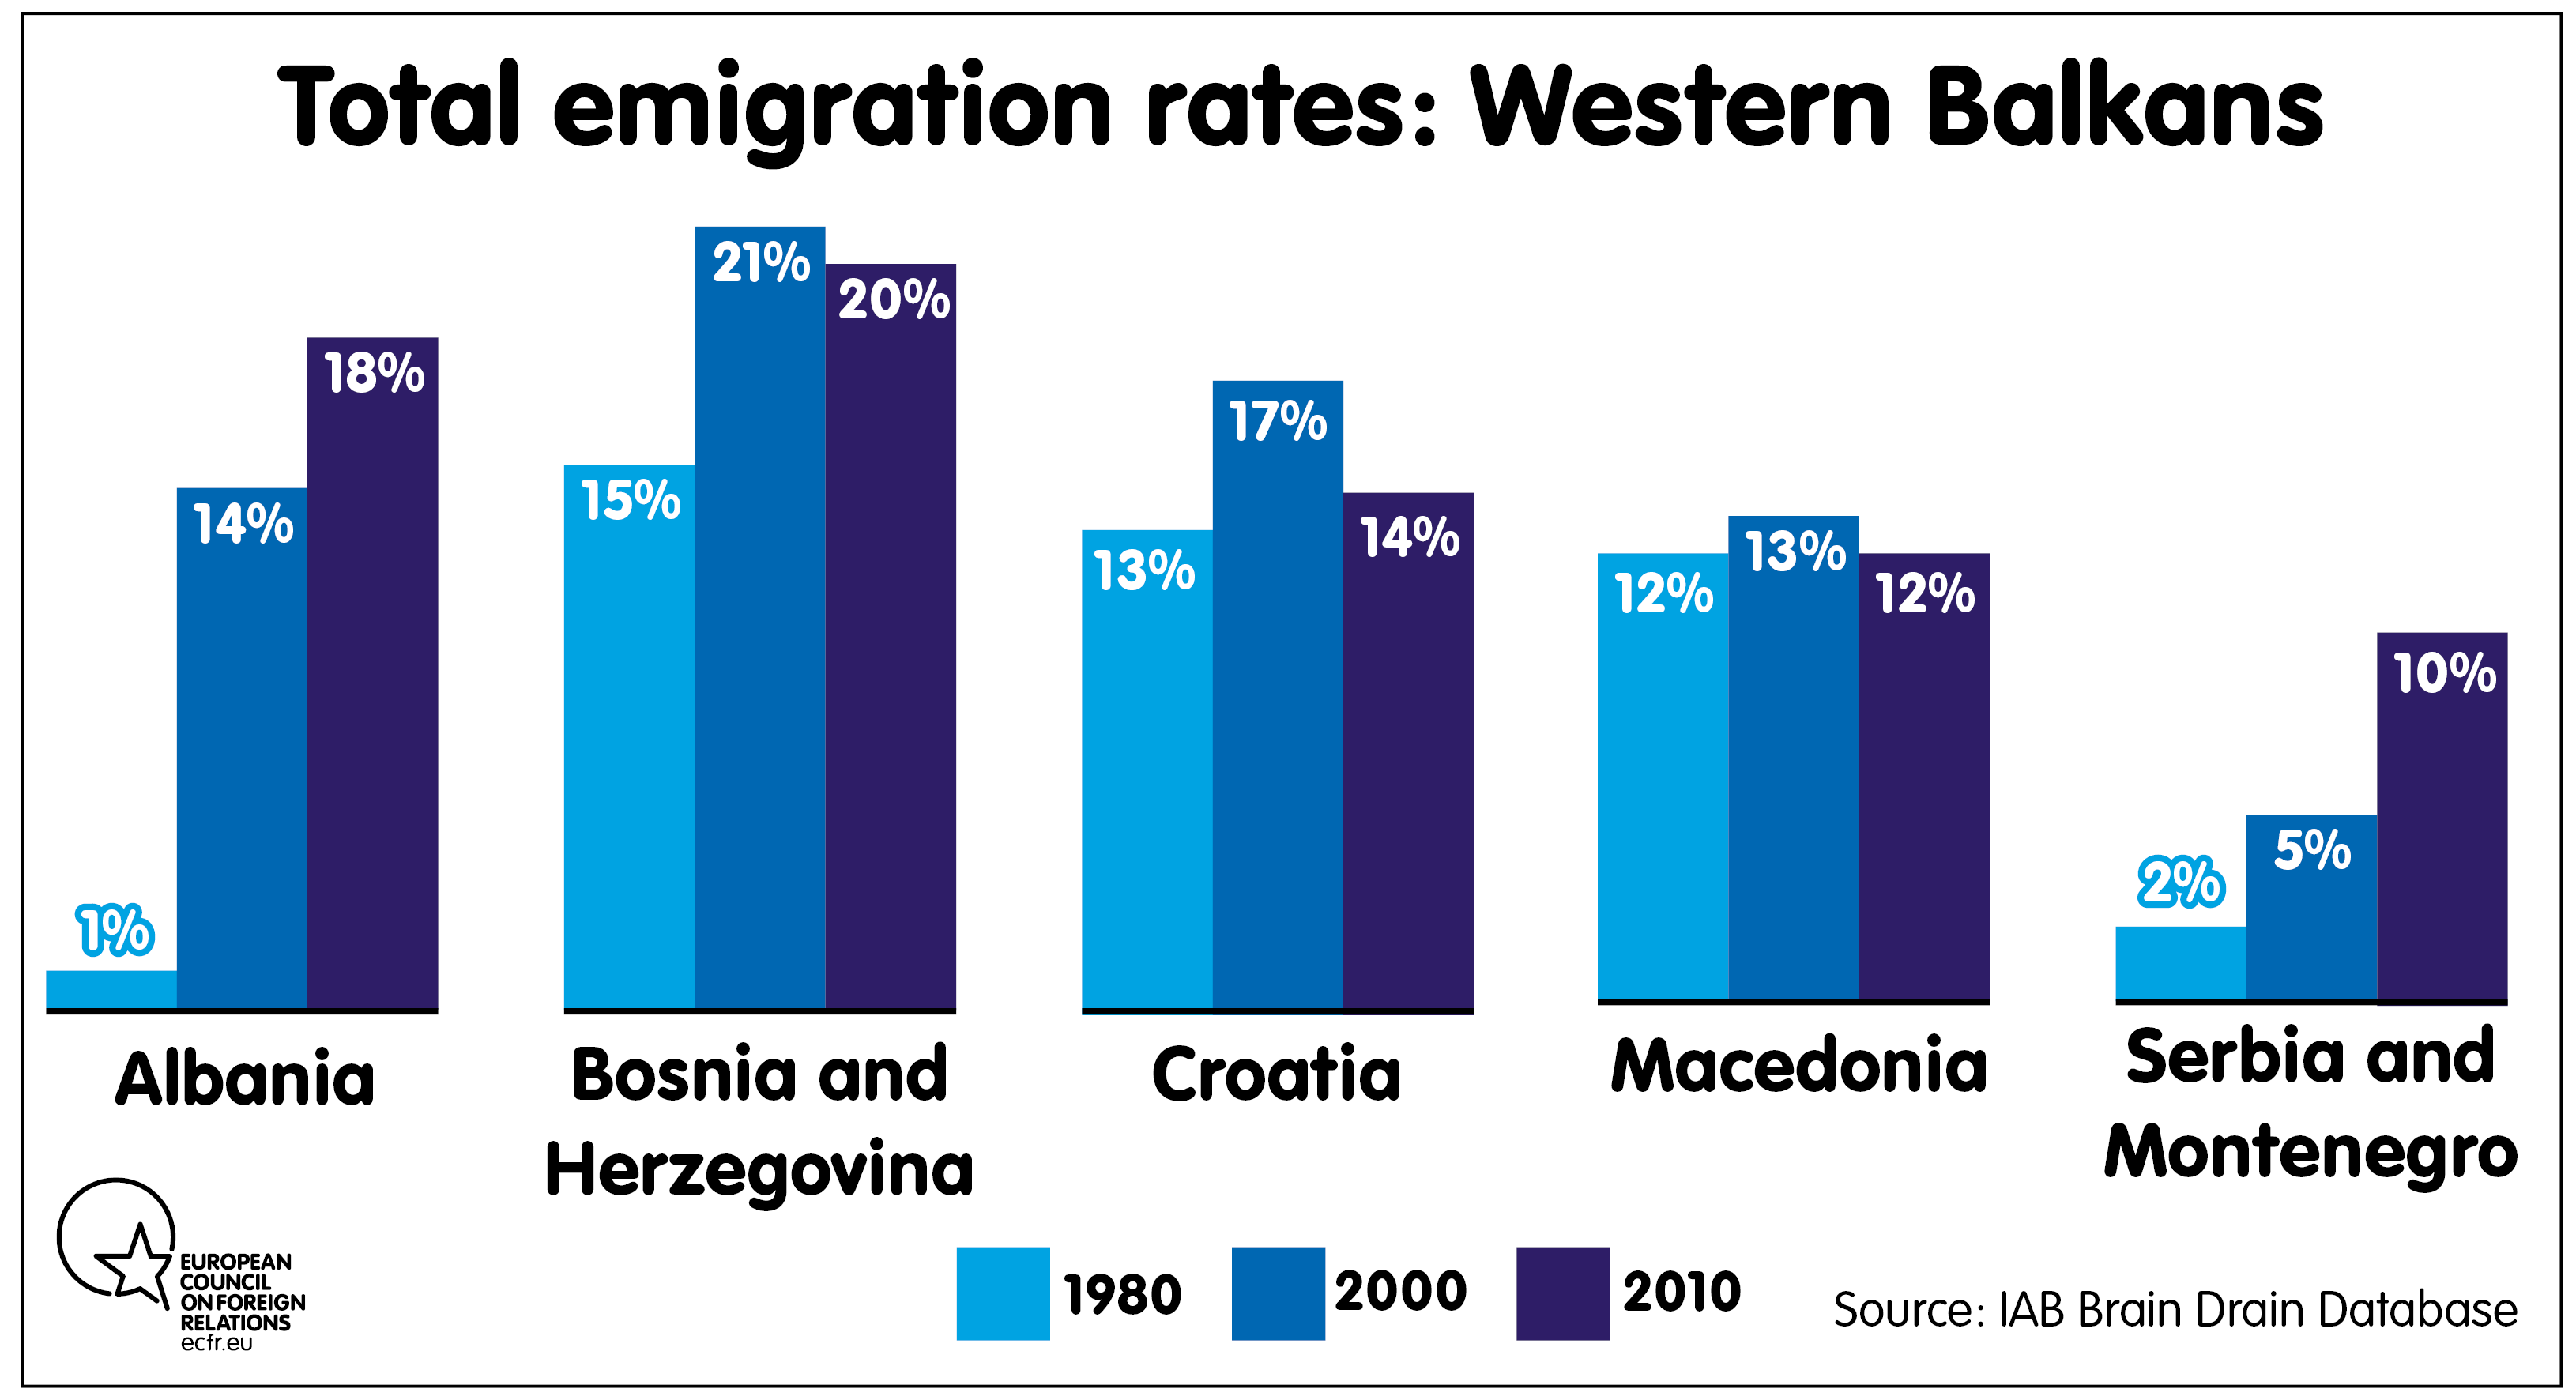 Total emigration rate